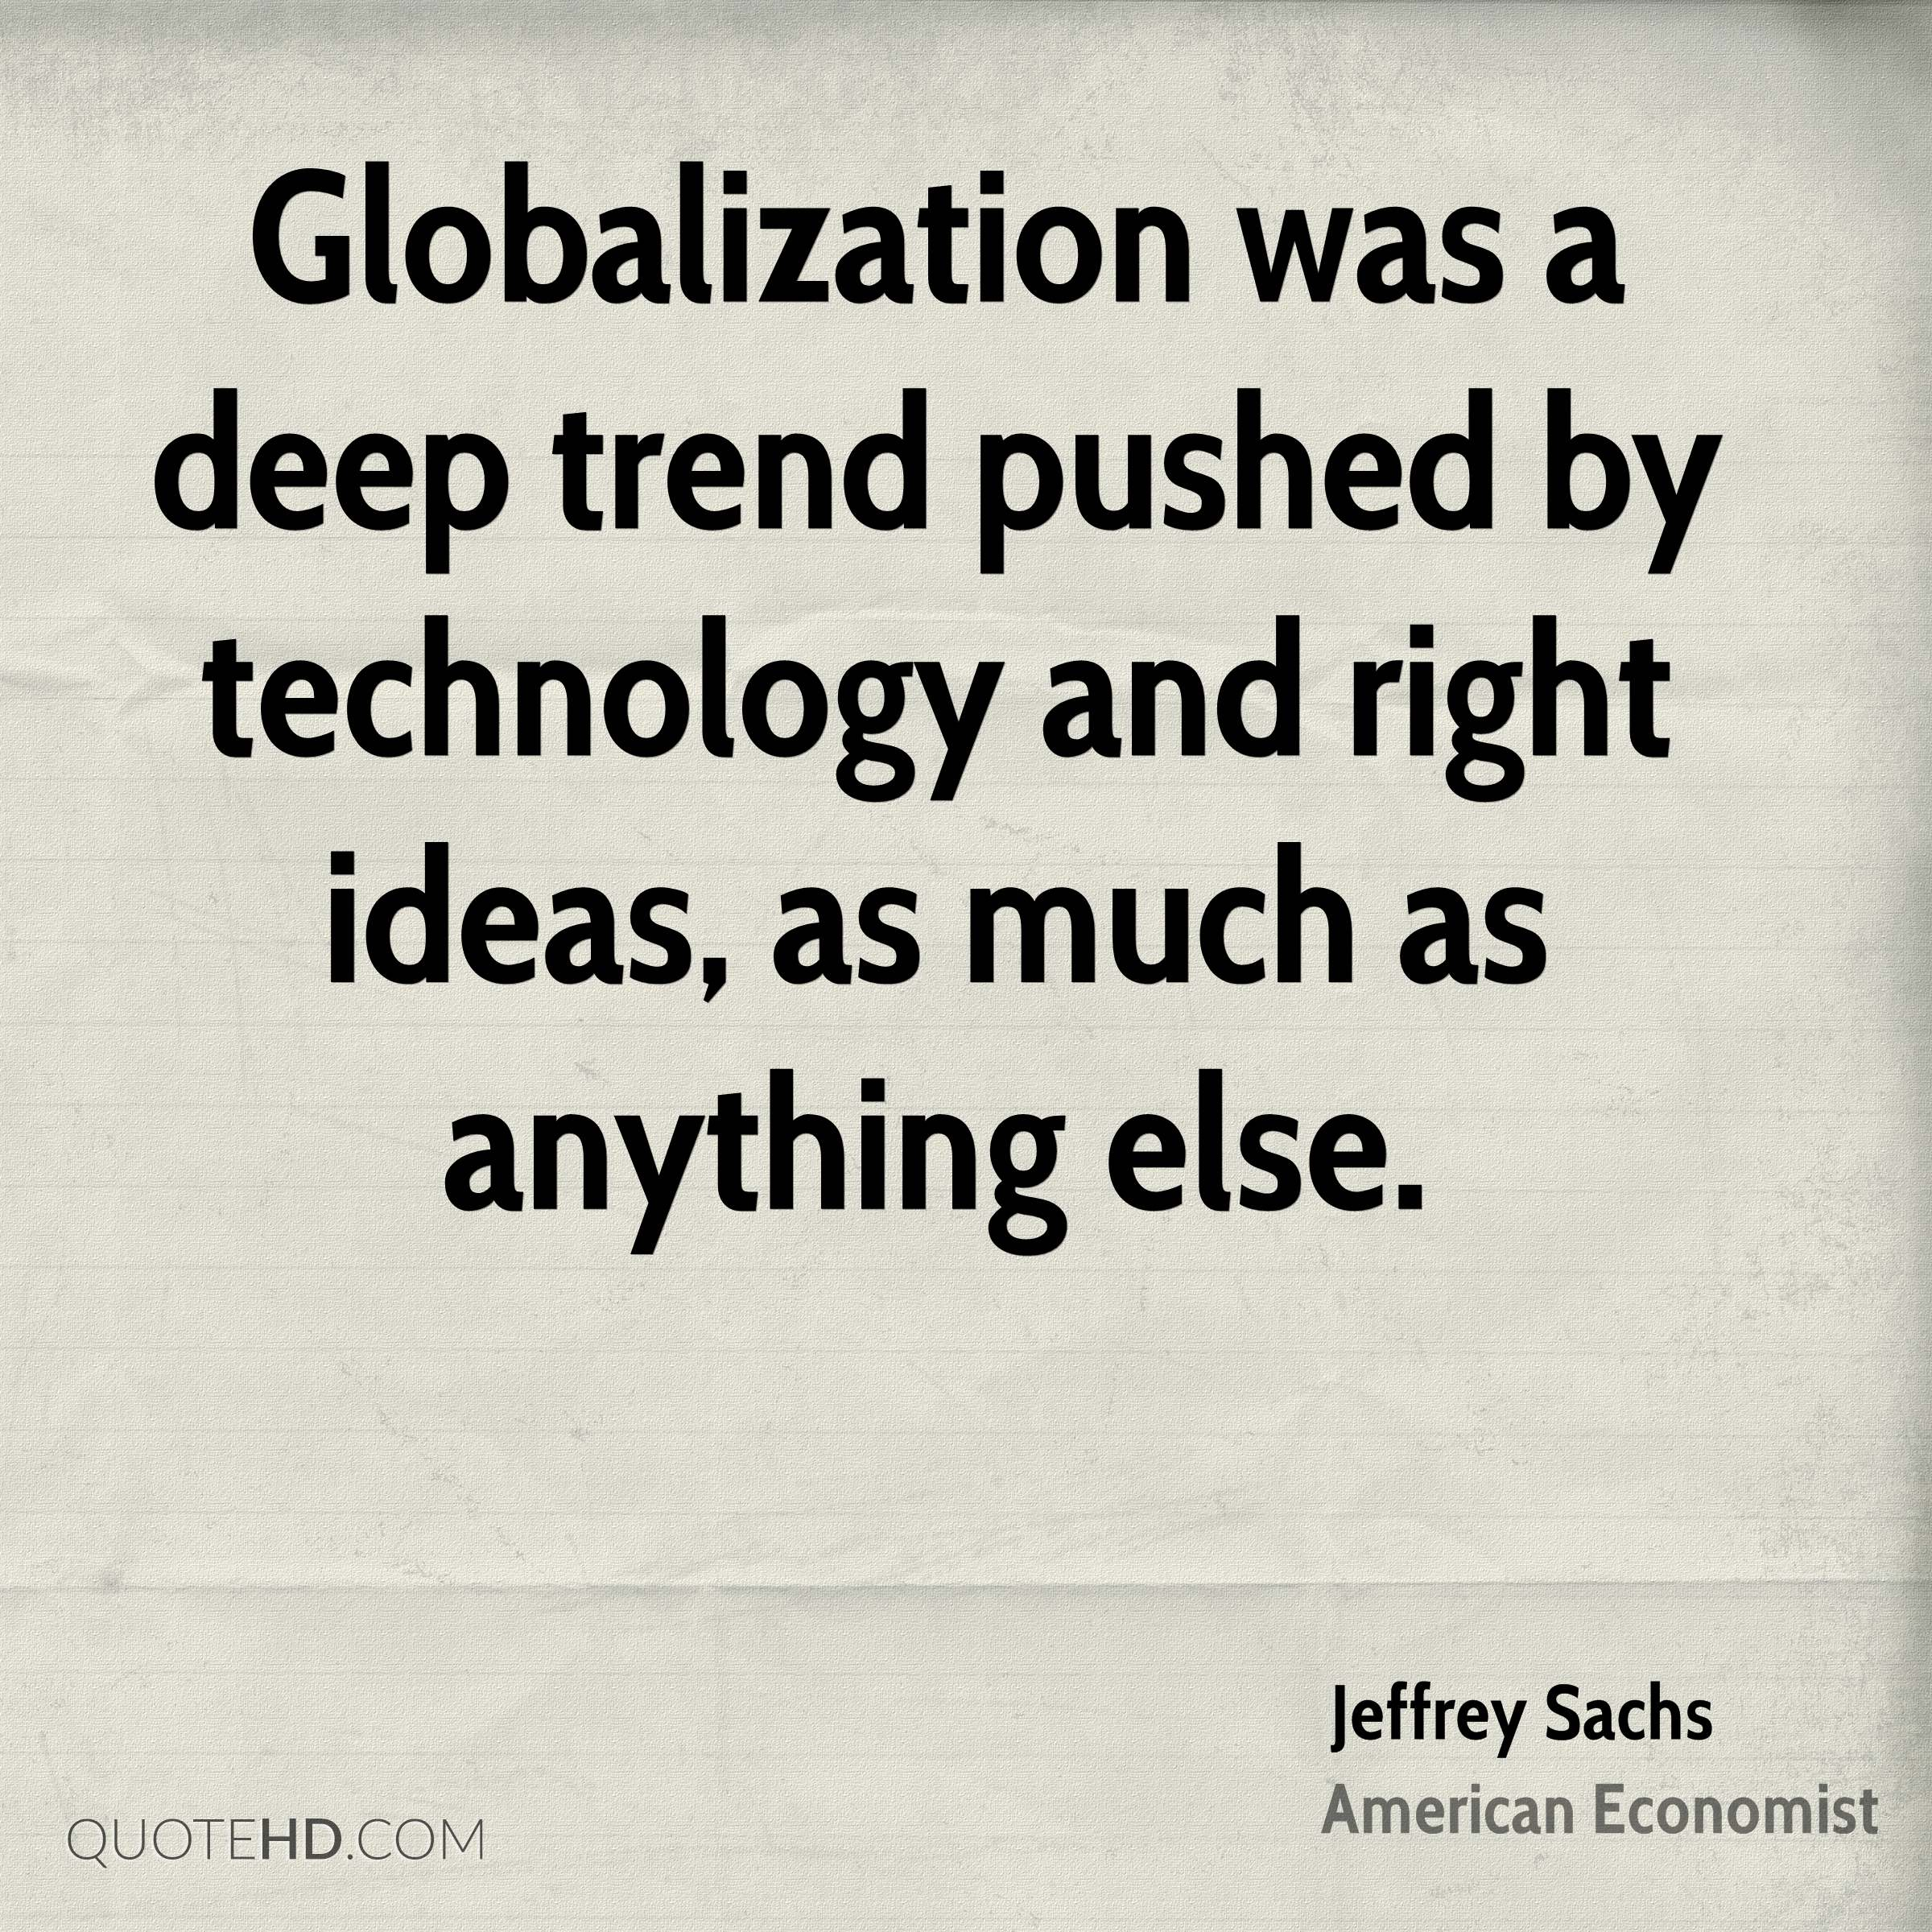 Globalization was a deep trend pushed by technology and right ideas, as much as anything else.